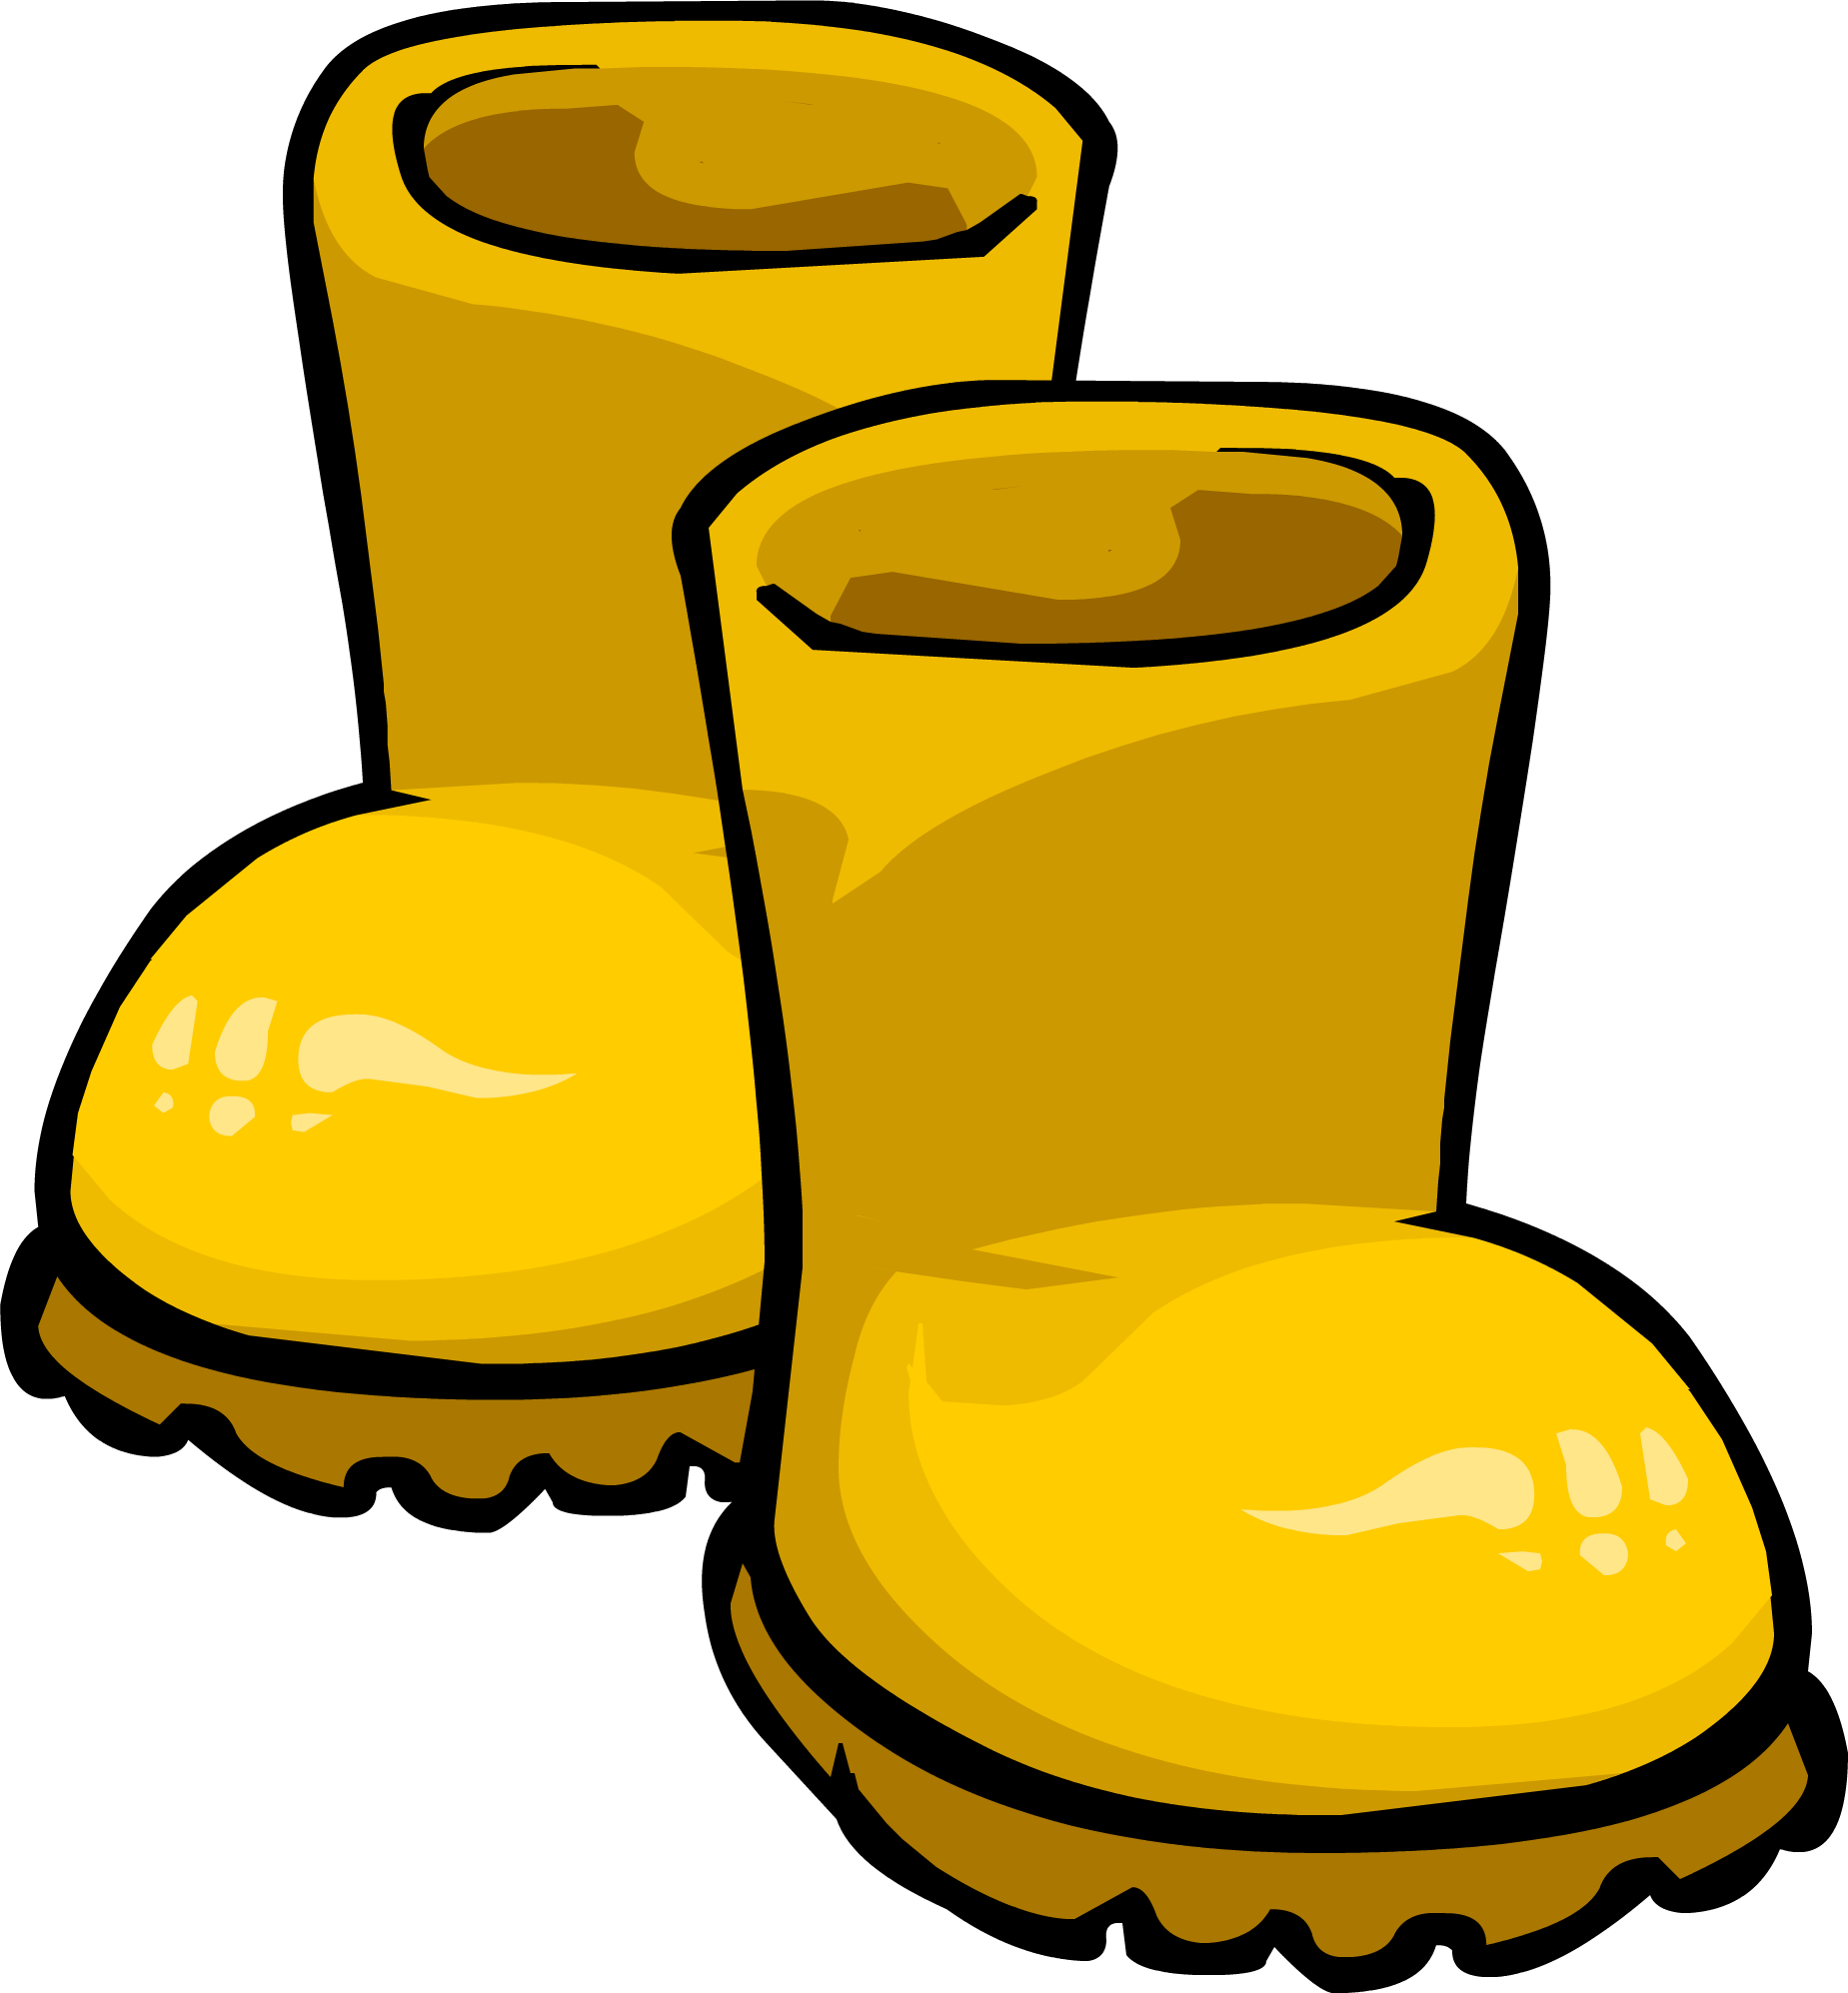 Clipart duck rainy. Yellow rubber boots club